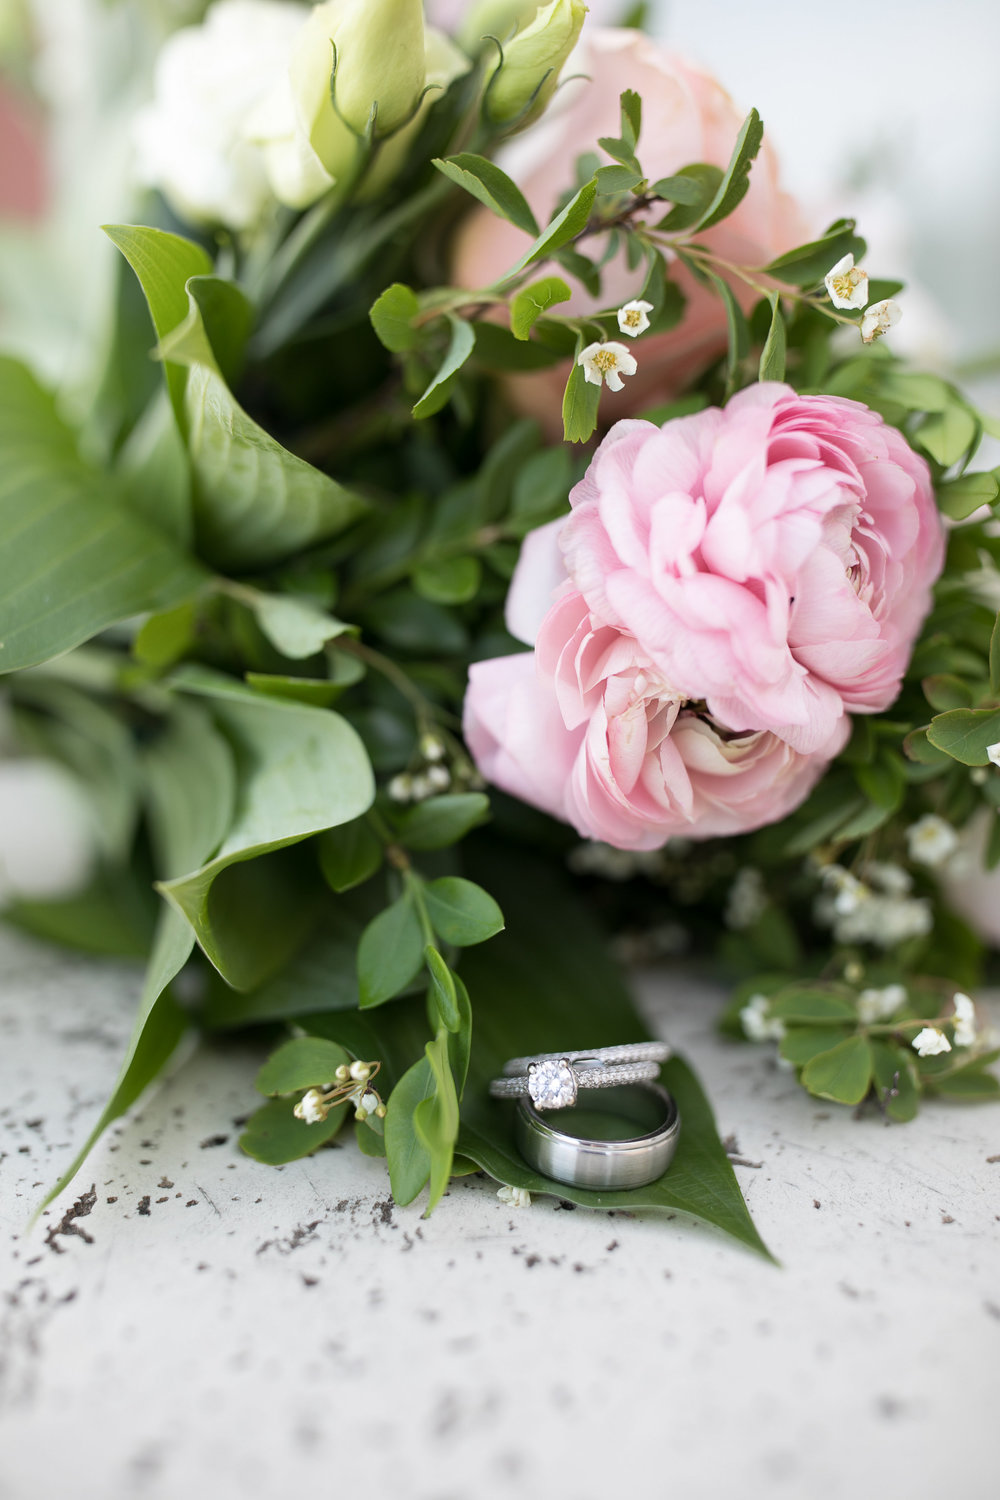 Budding Creations wedding bouquet | wedding rings | round diamond | pink ranunculus and lisianthus | Sixpence Events